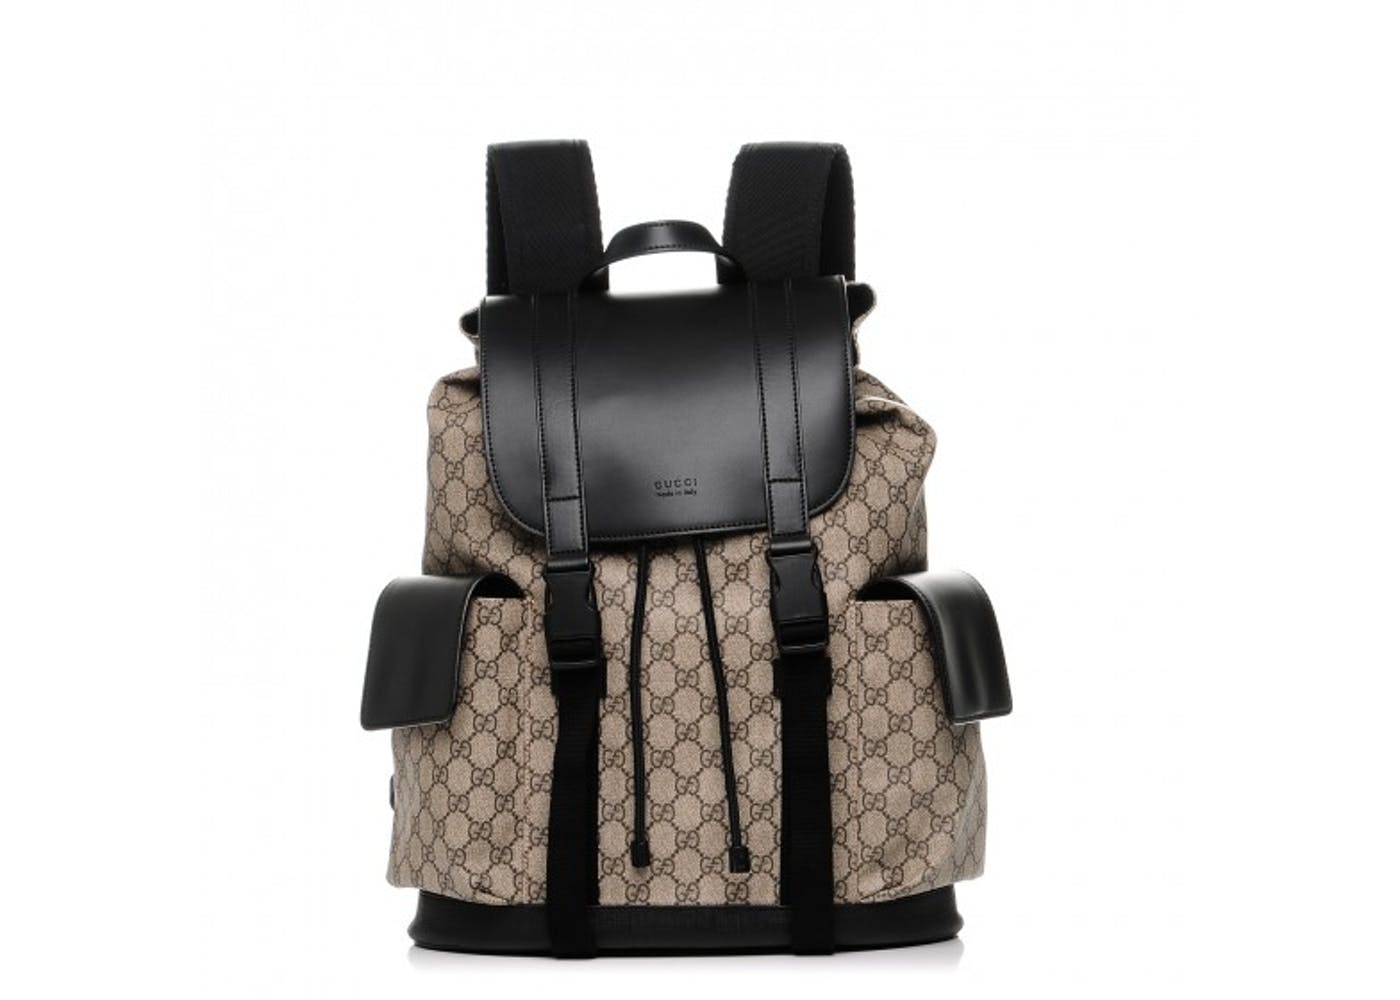 9152dab7212d This Gucci GG Supreme Soft Monogram backpack in black leather trim and  monogram canvas has a top with a buckle closure